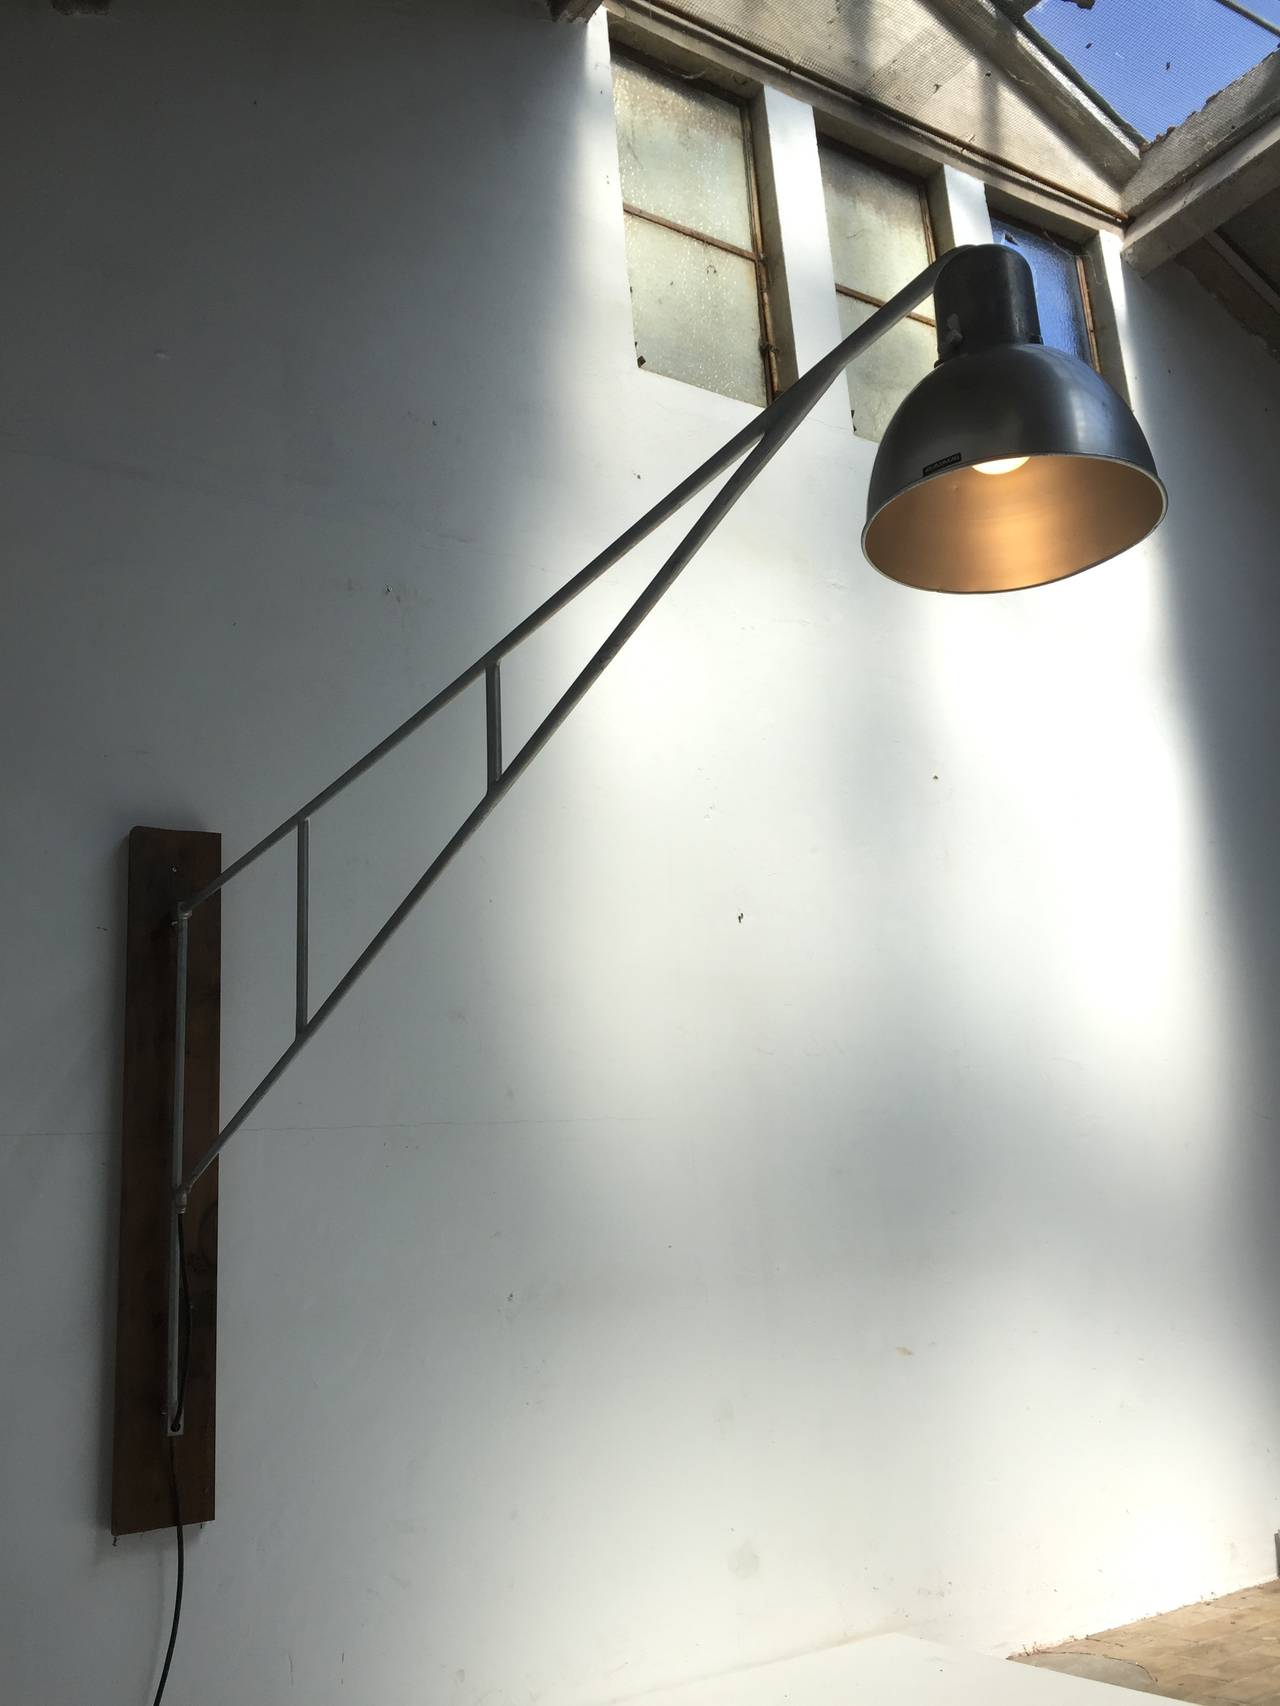 lighting led diode emitting light fixture jm in supply bangalore industrial and